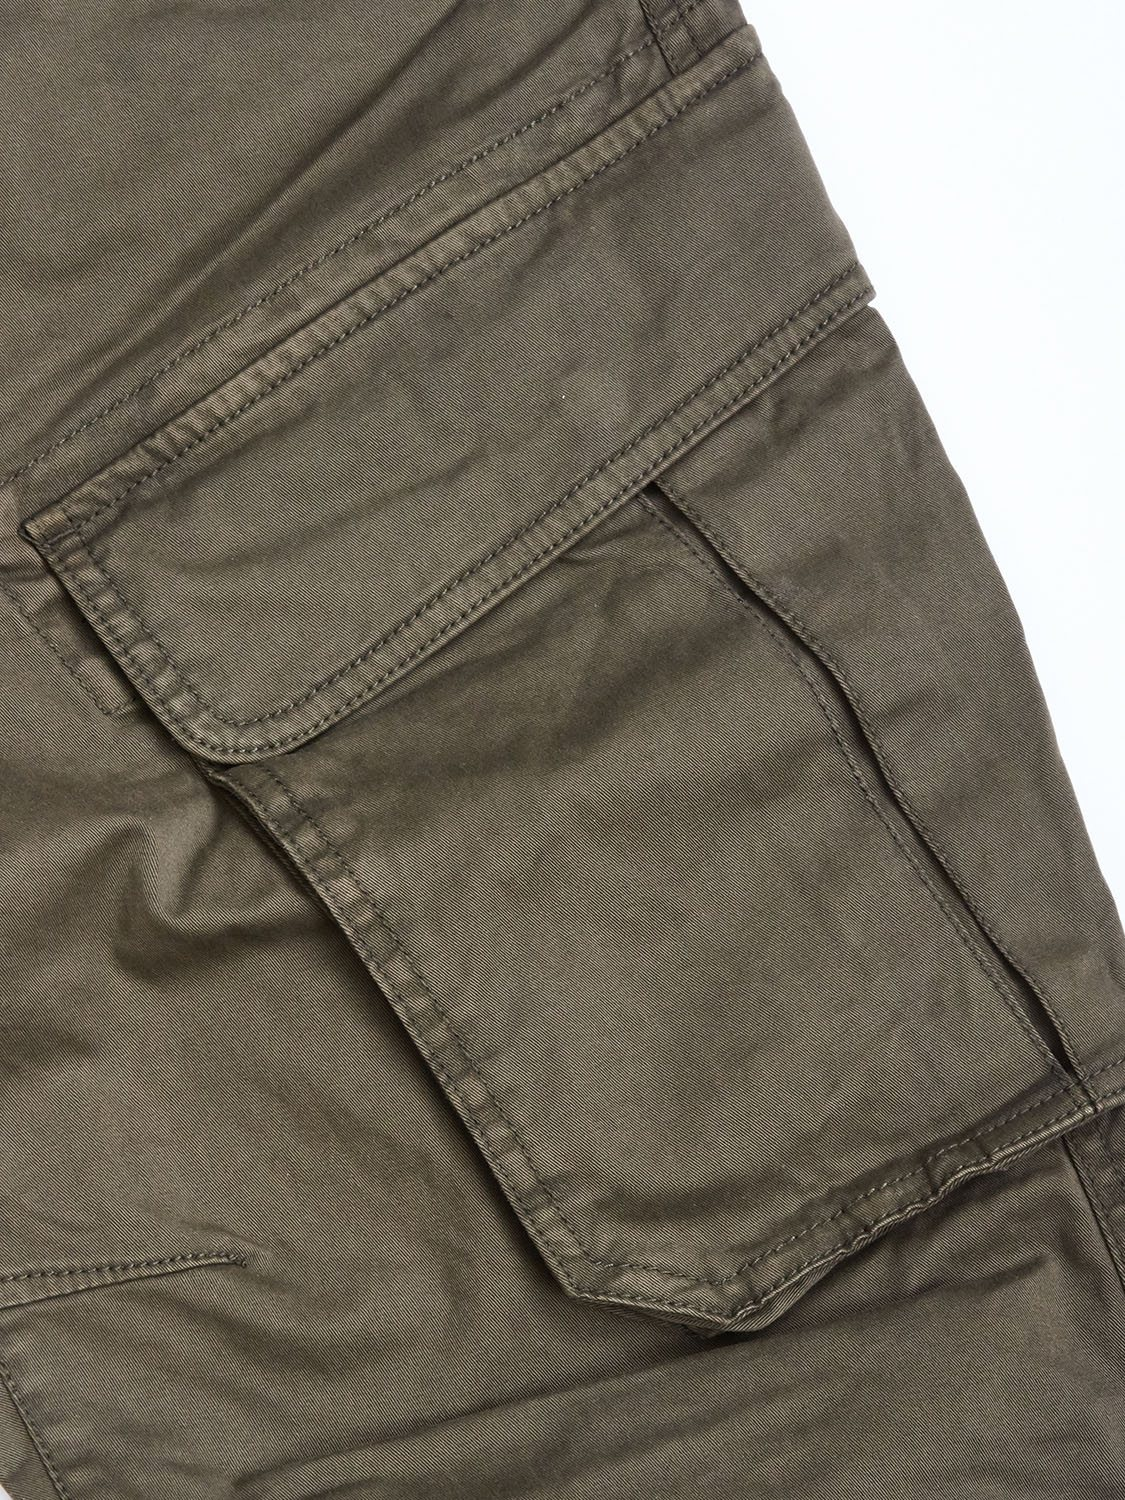 GABBA - Rufo Cargo Pants Grape Leaf | GATE36 HOBRO